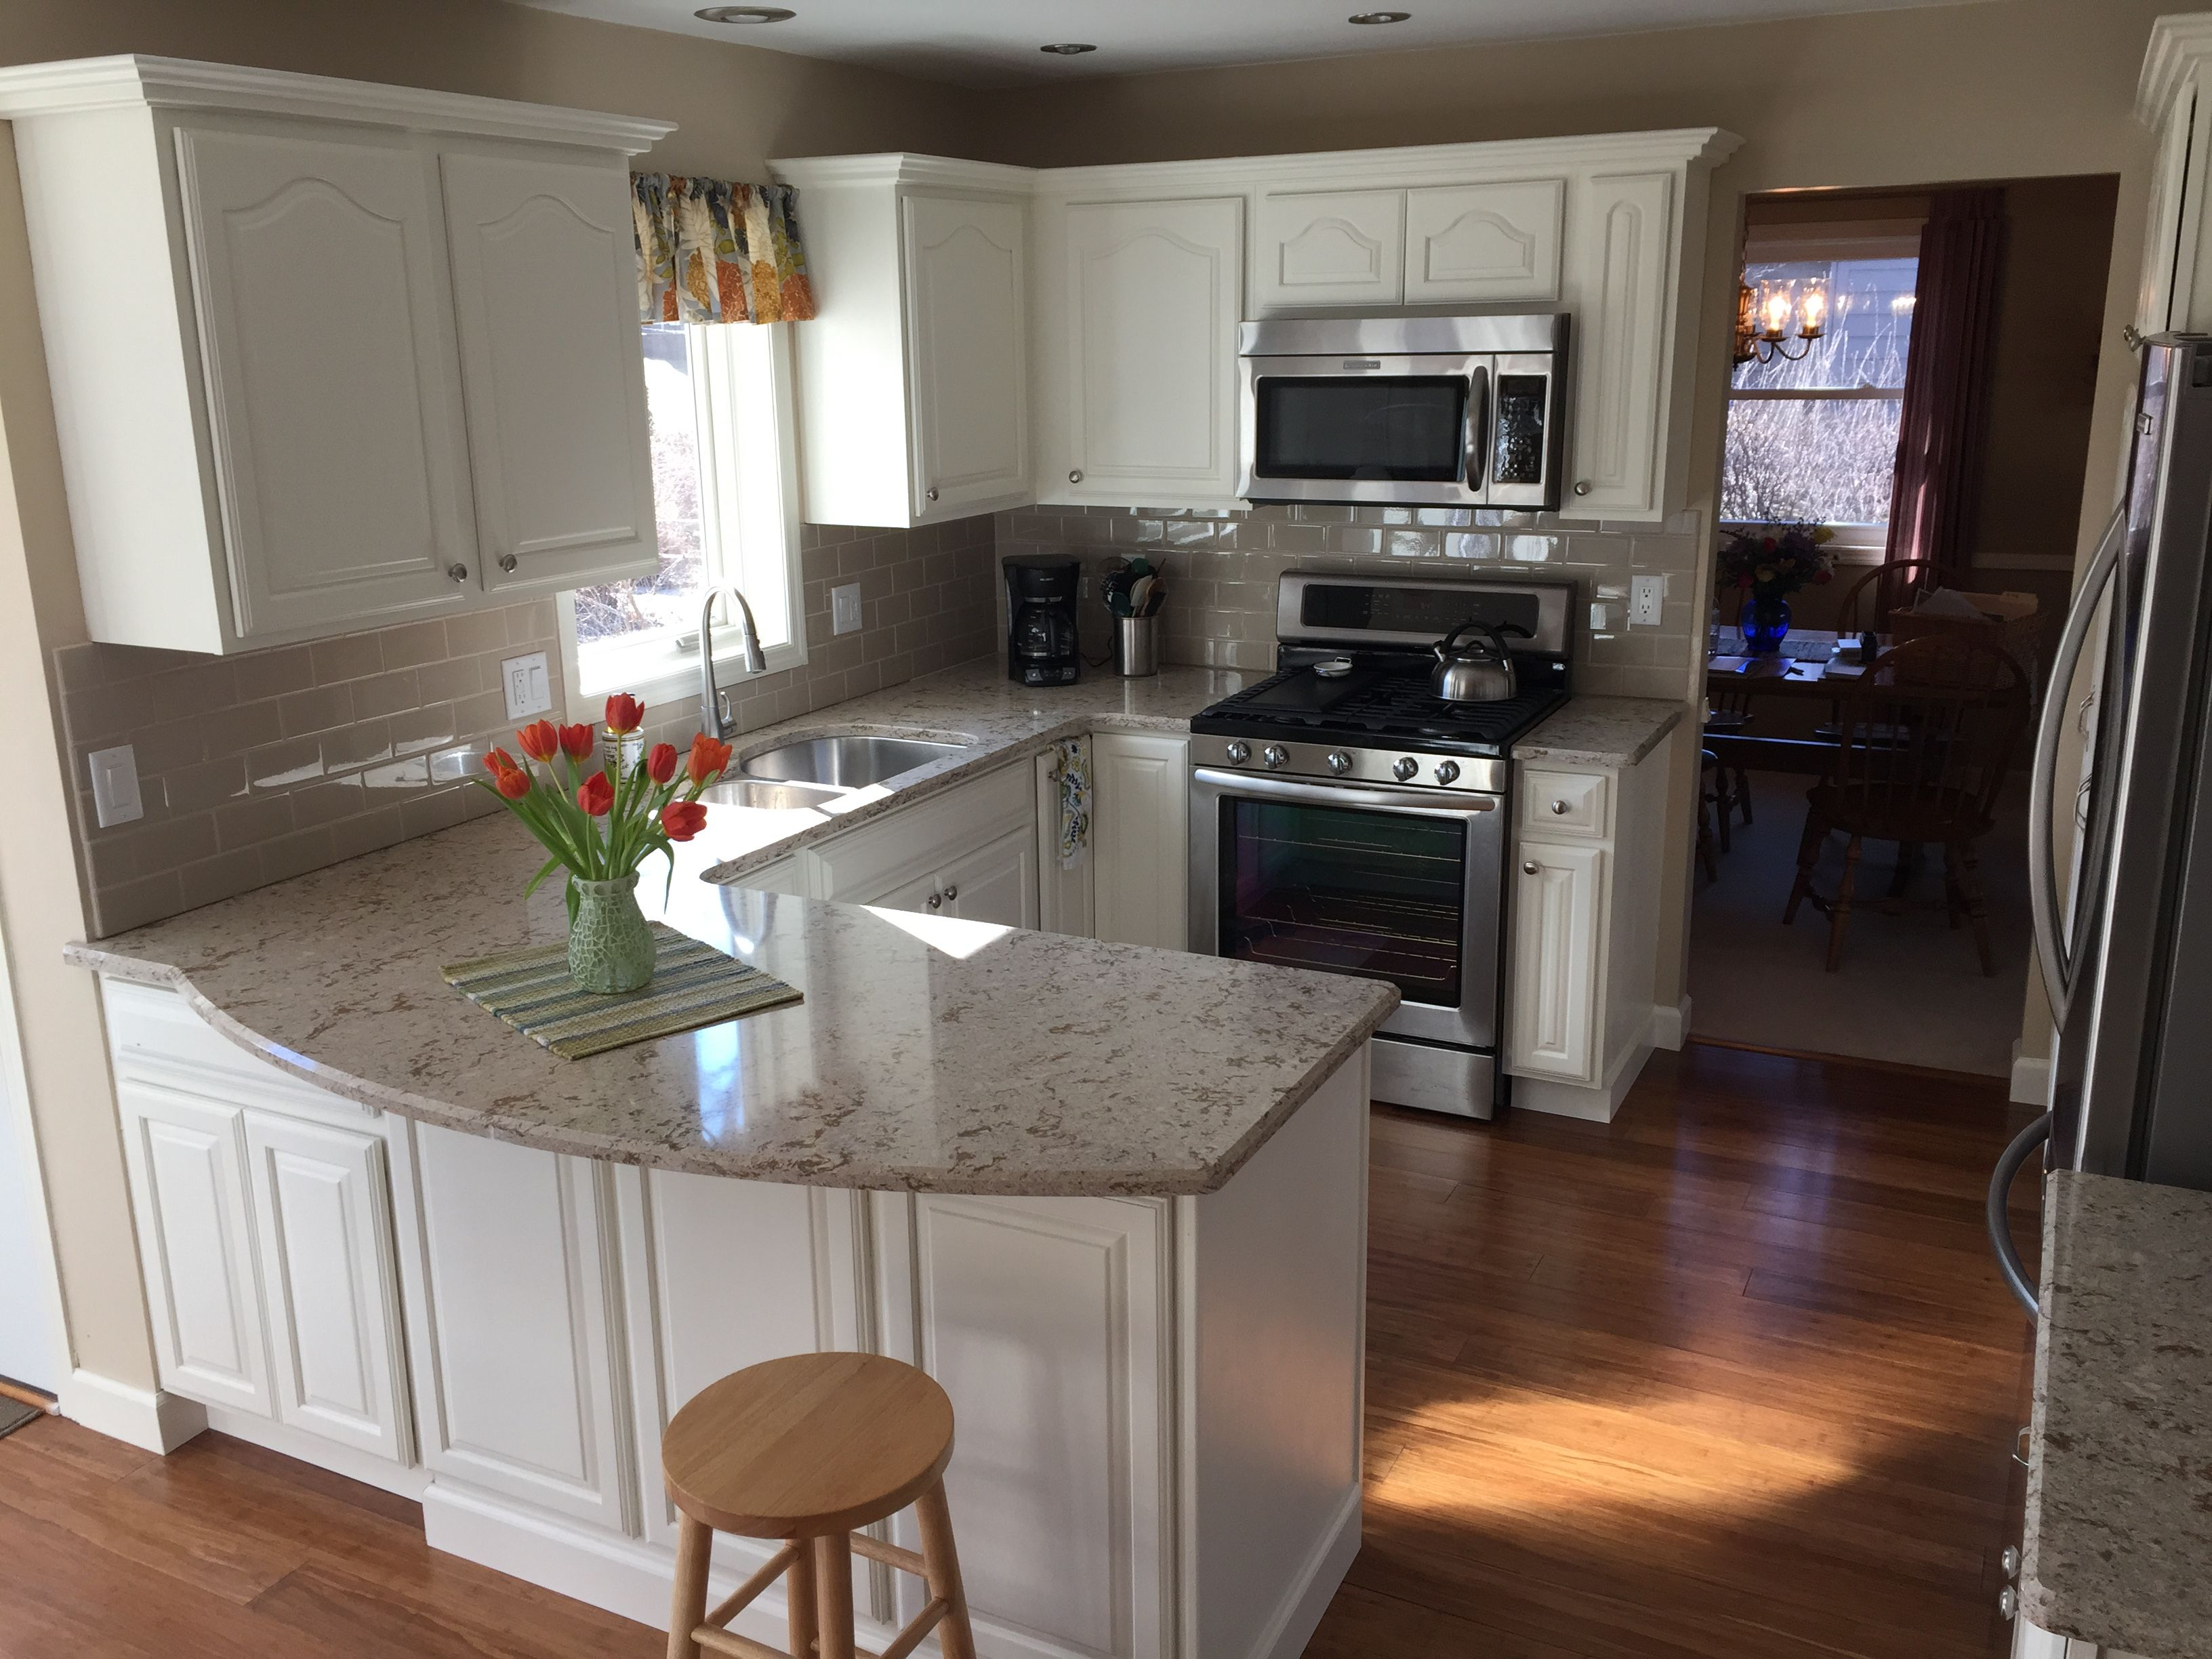 Our kitchen remodel oak cabinets painted white we used sherwin